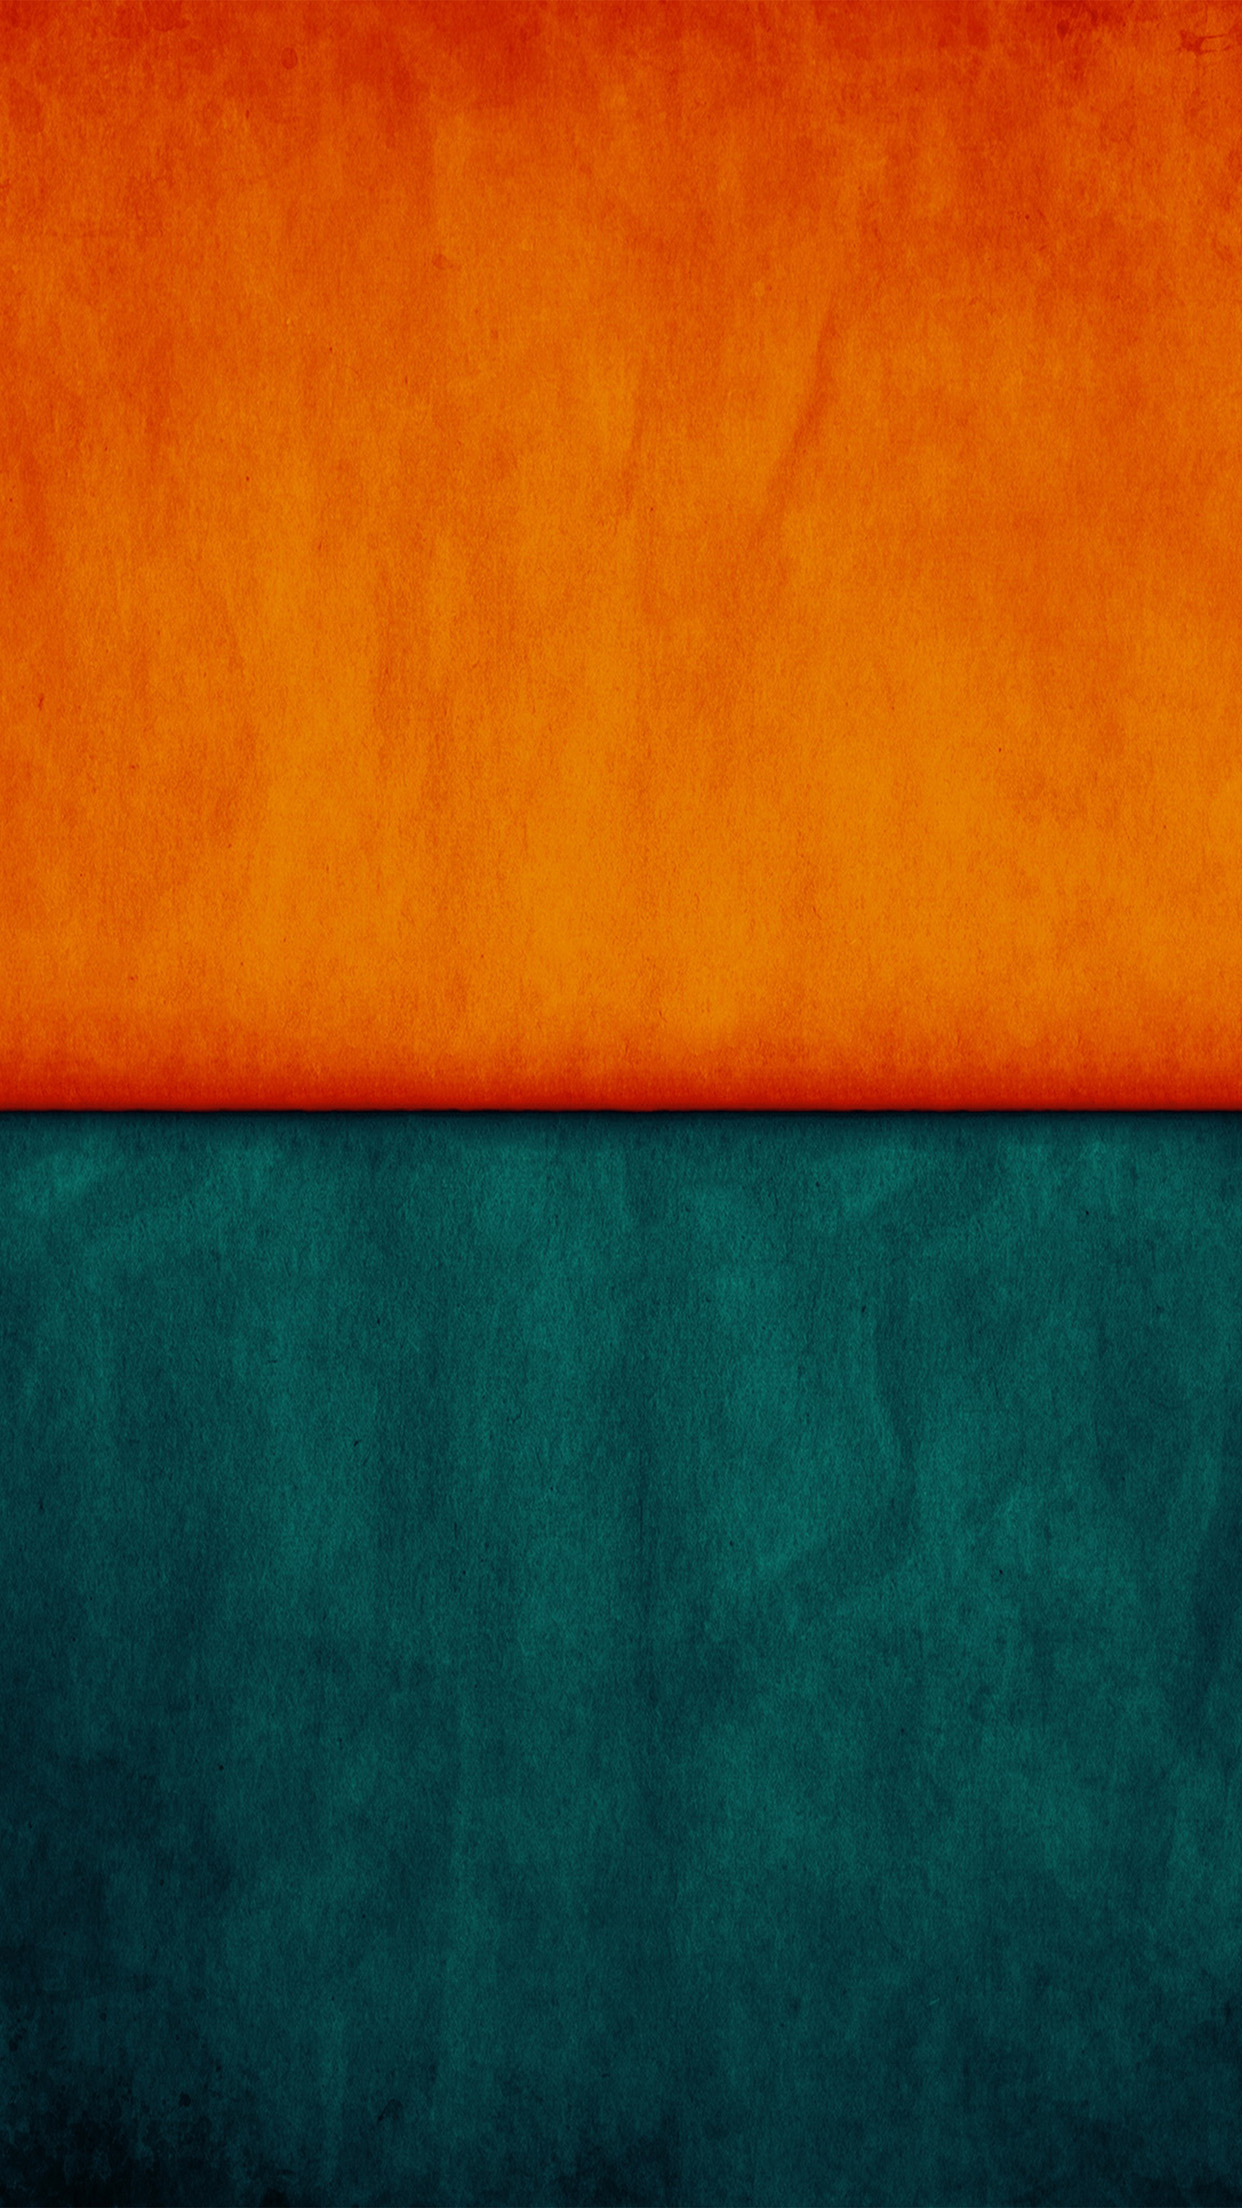 Simple Car Wallpapers Papers Co Iphone Wallpaper Vx27 Orange Blue Pattern